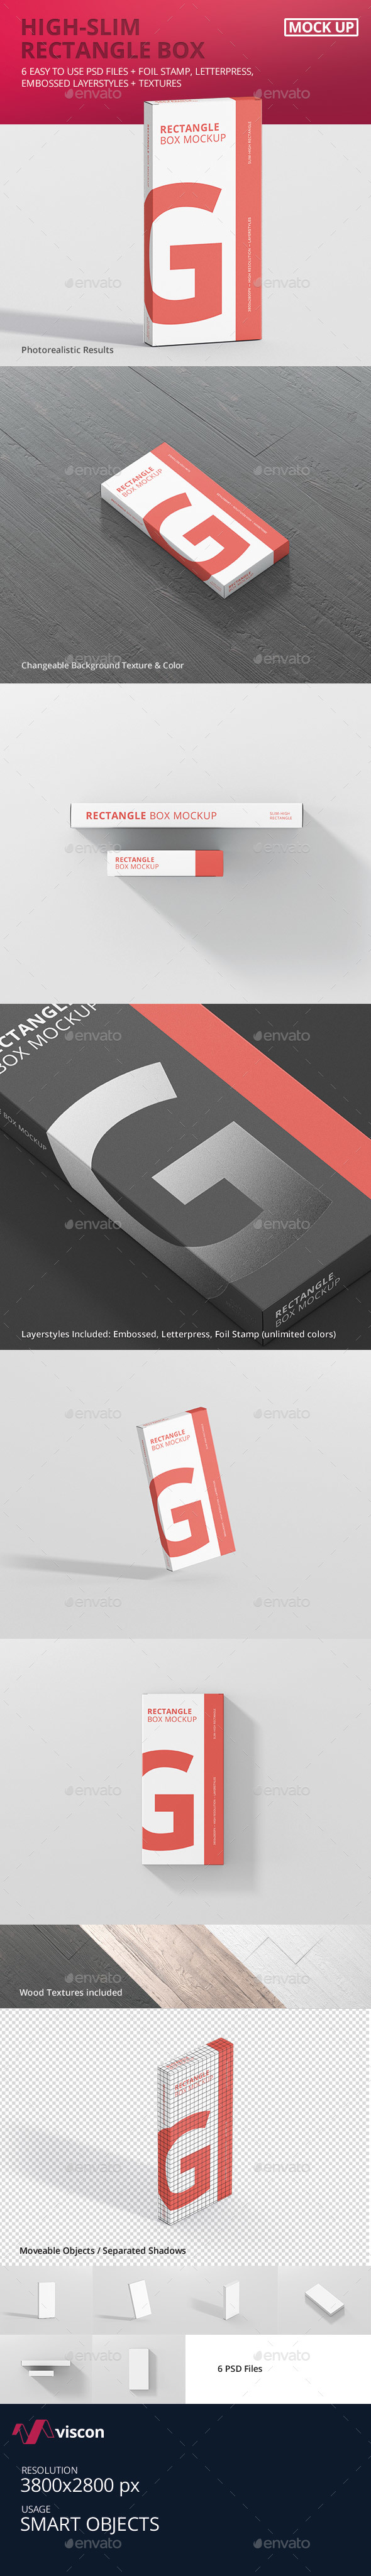 GraphicRiver Box Mockup High Slim Rectangle 20991708